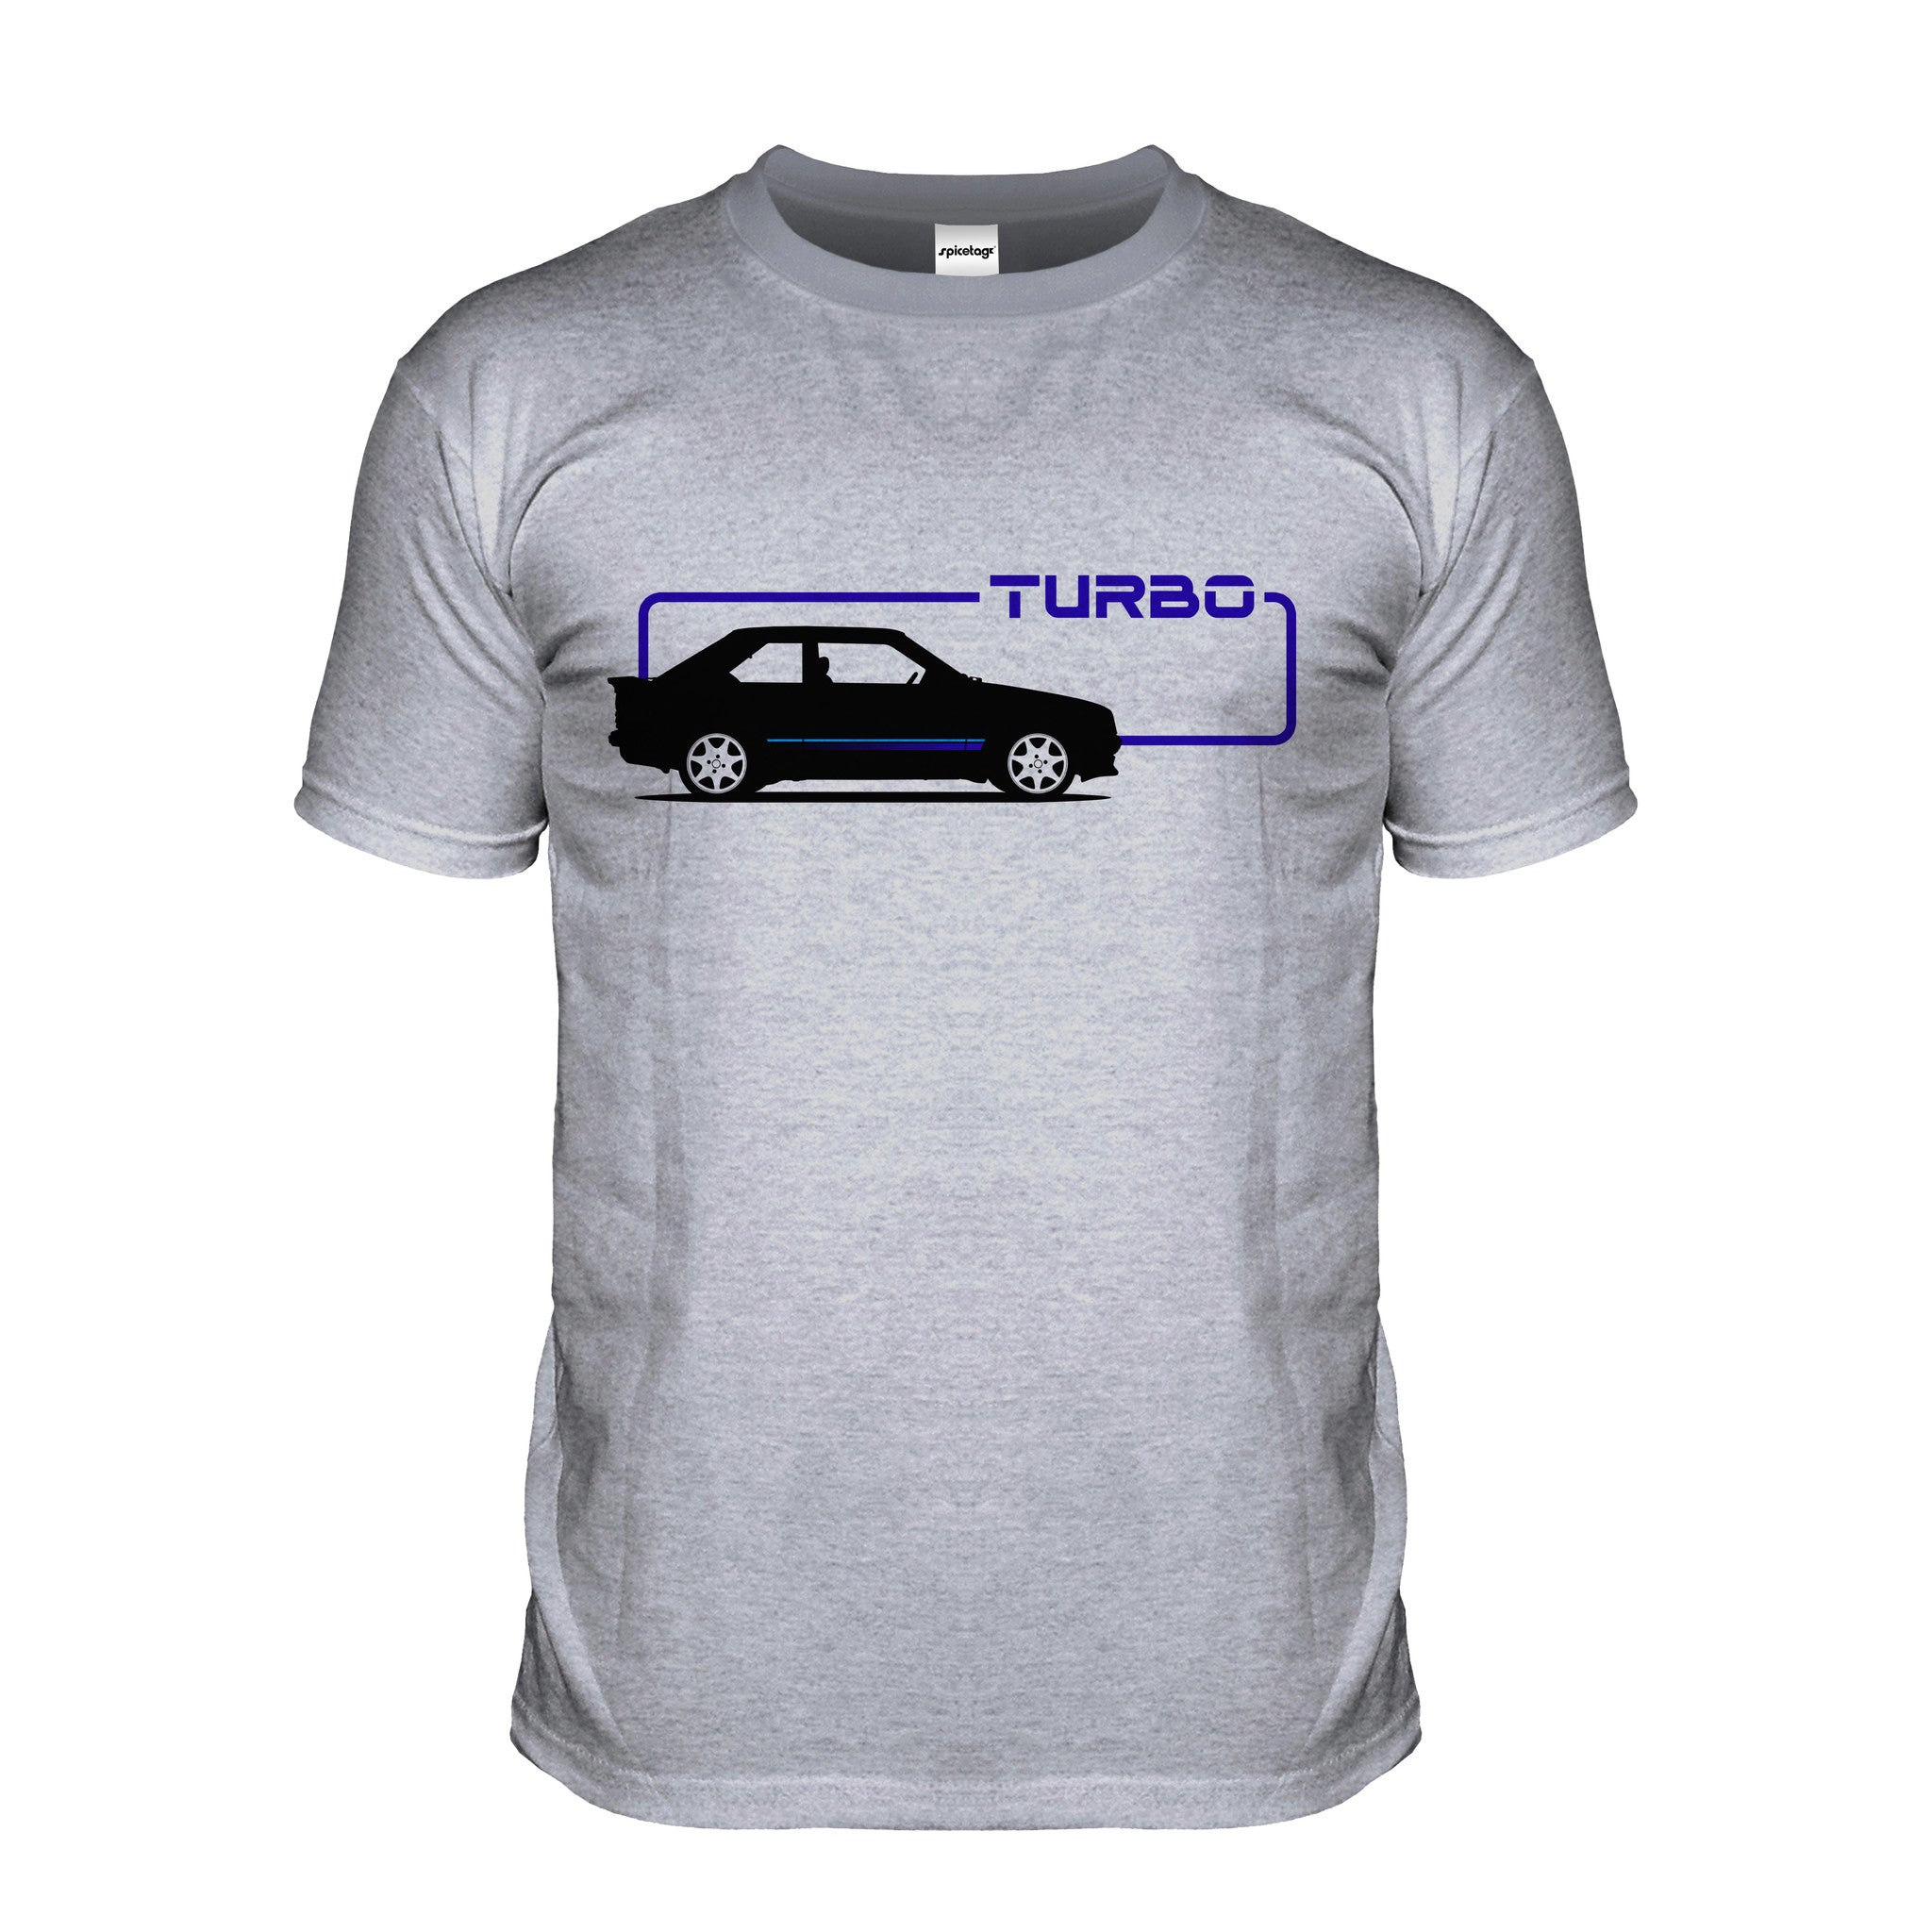 Escort Turbo Black Car T-shirt